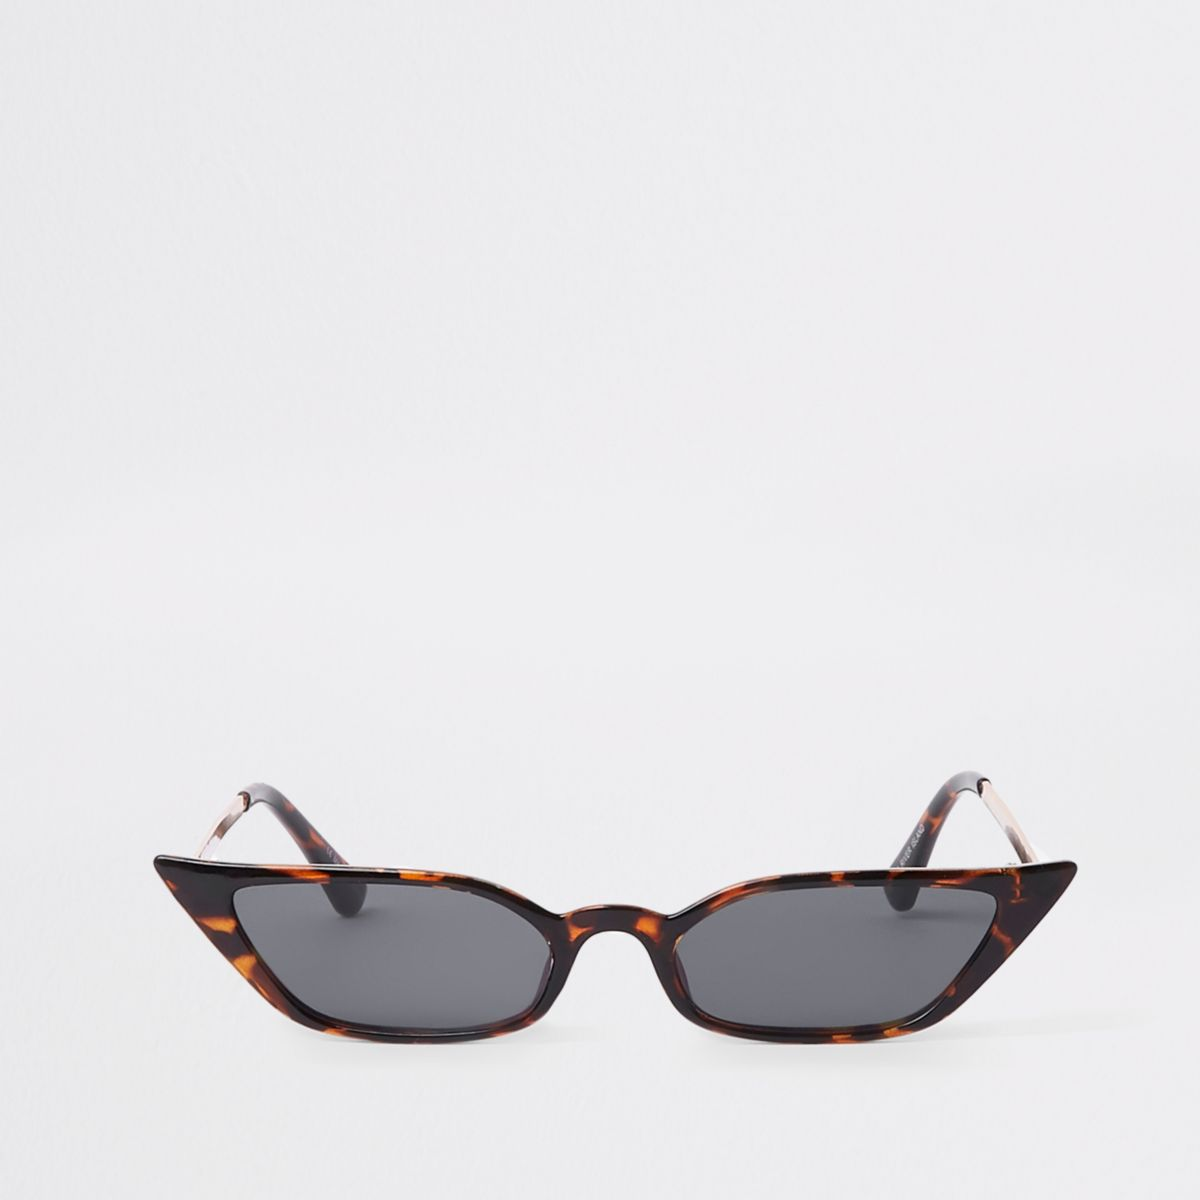 Brown tortoise shell slim visor sunglasses